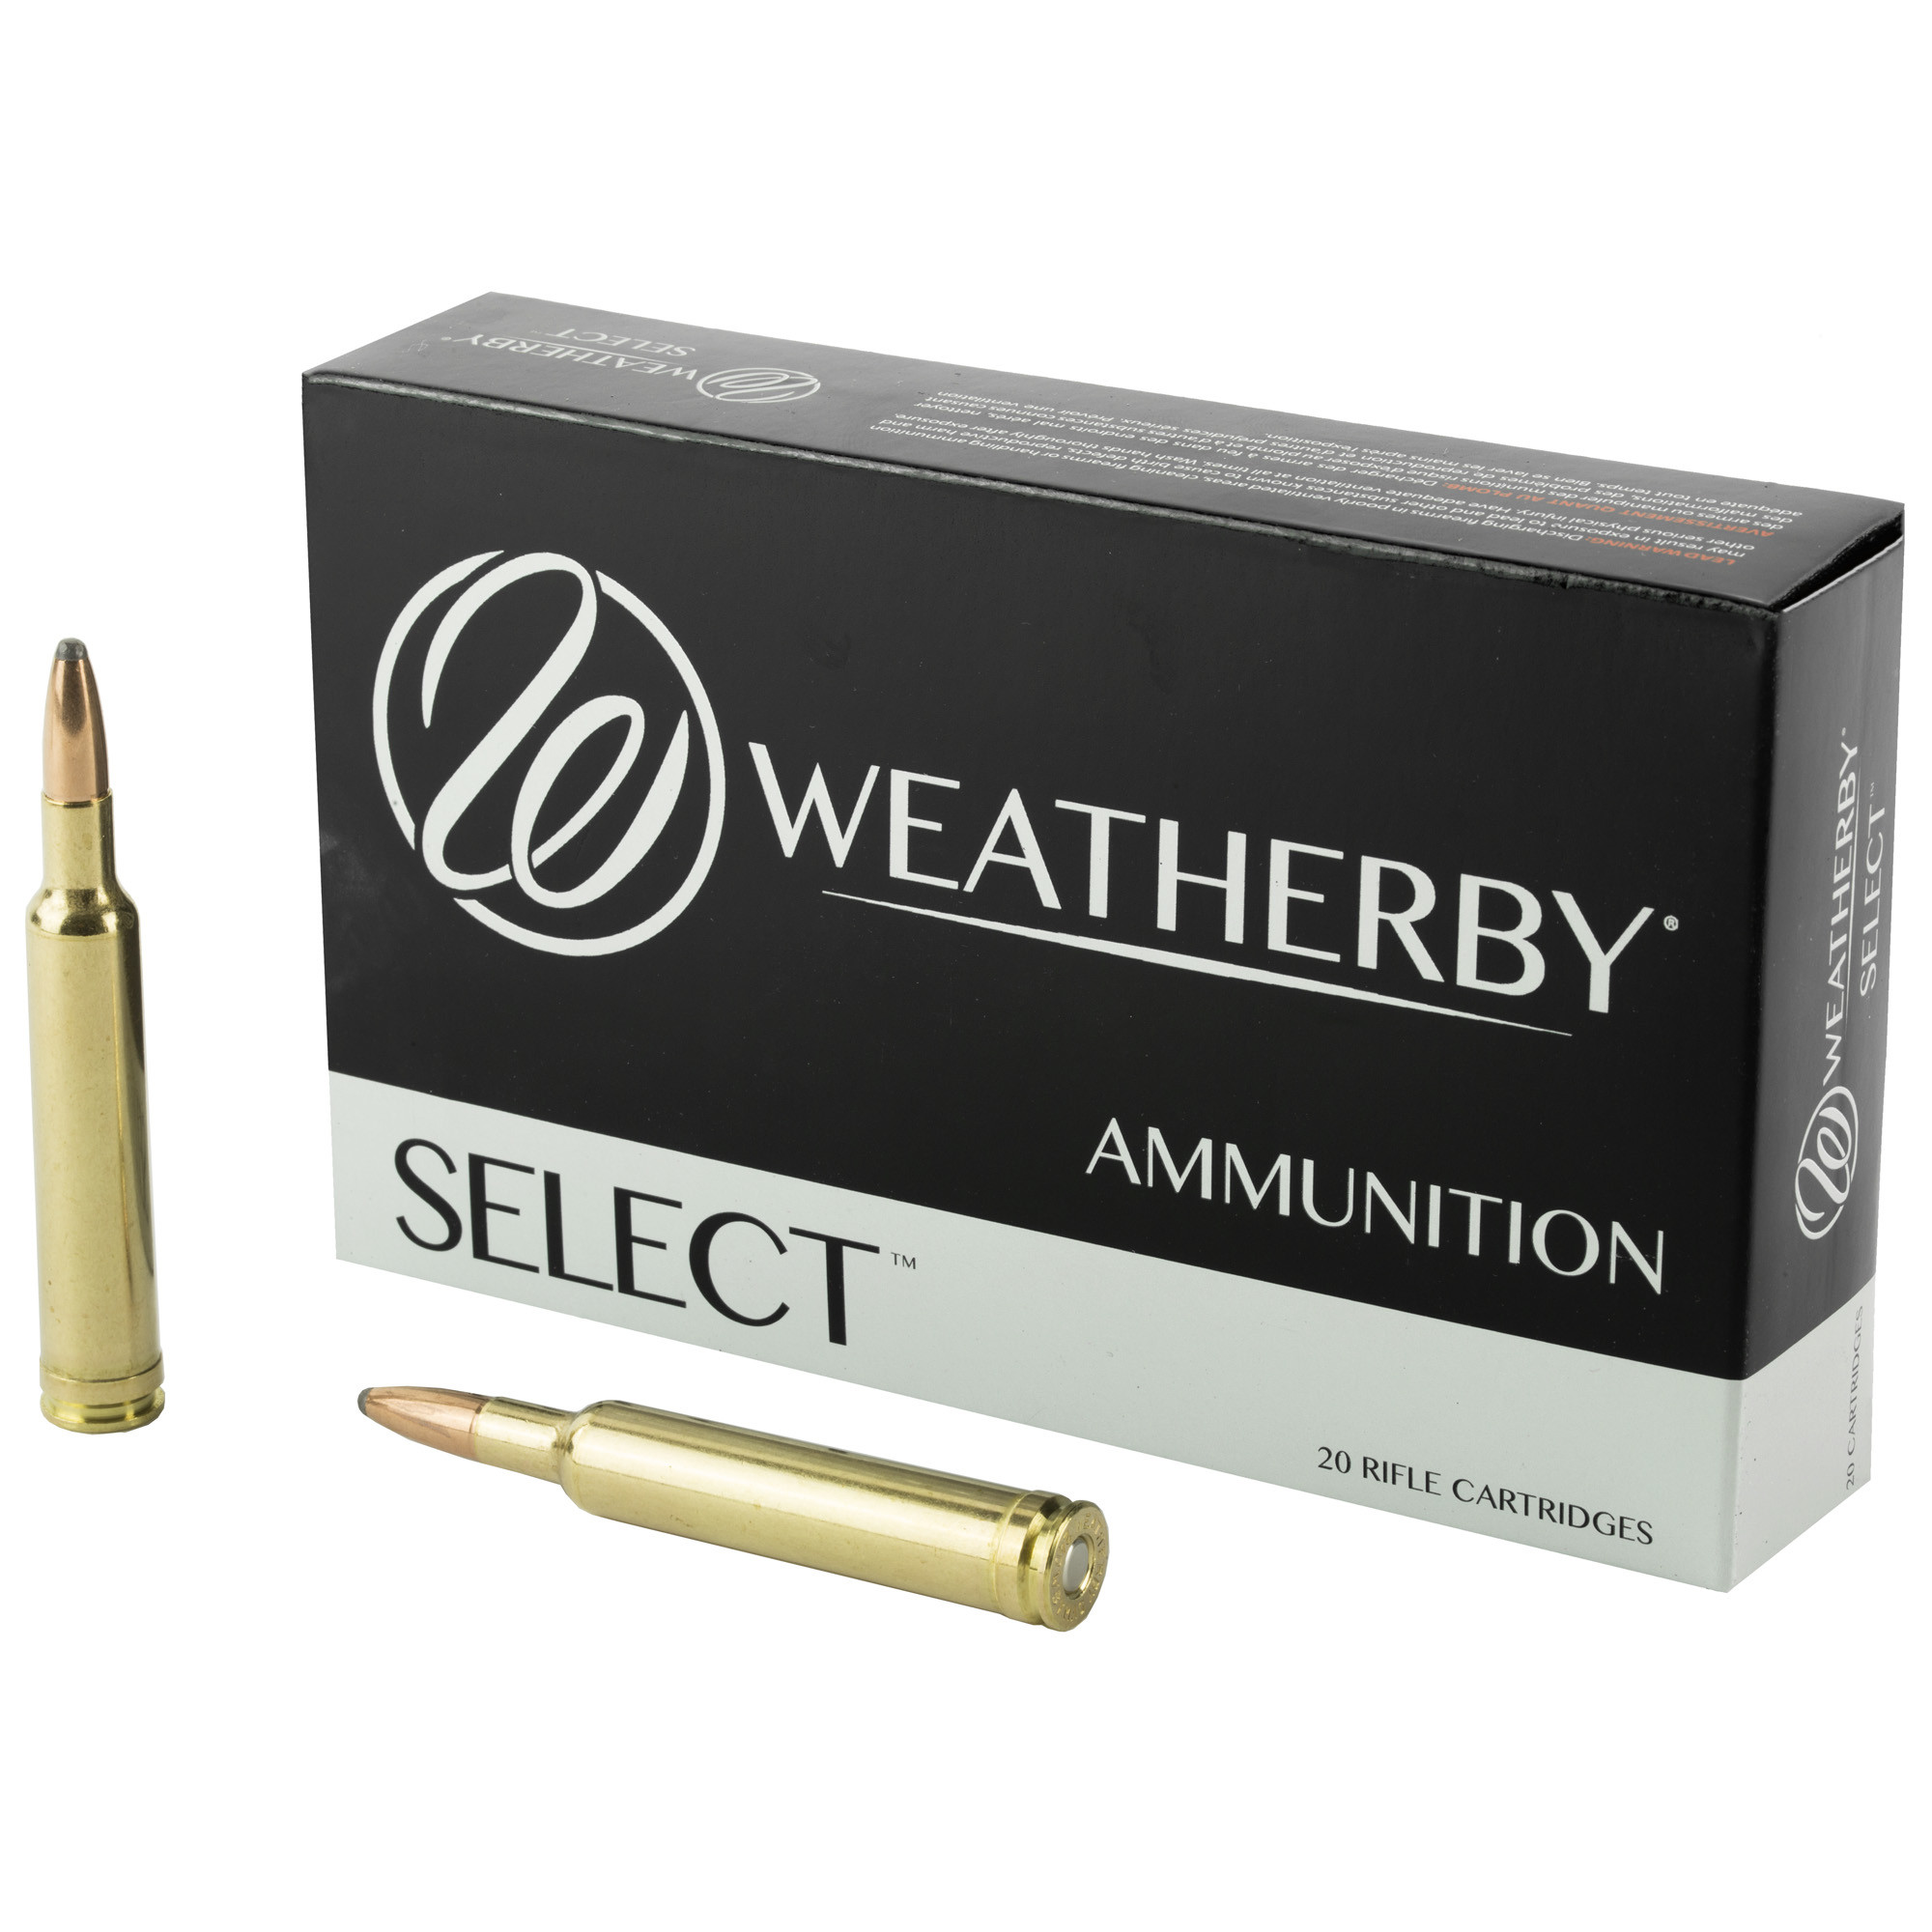 Weatherby Select Ammunition 240 Weatherby Magnum 100GR Norma Spitzer Per 20